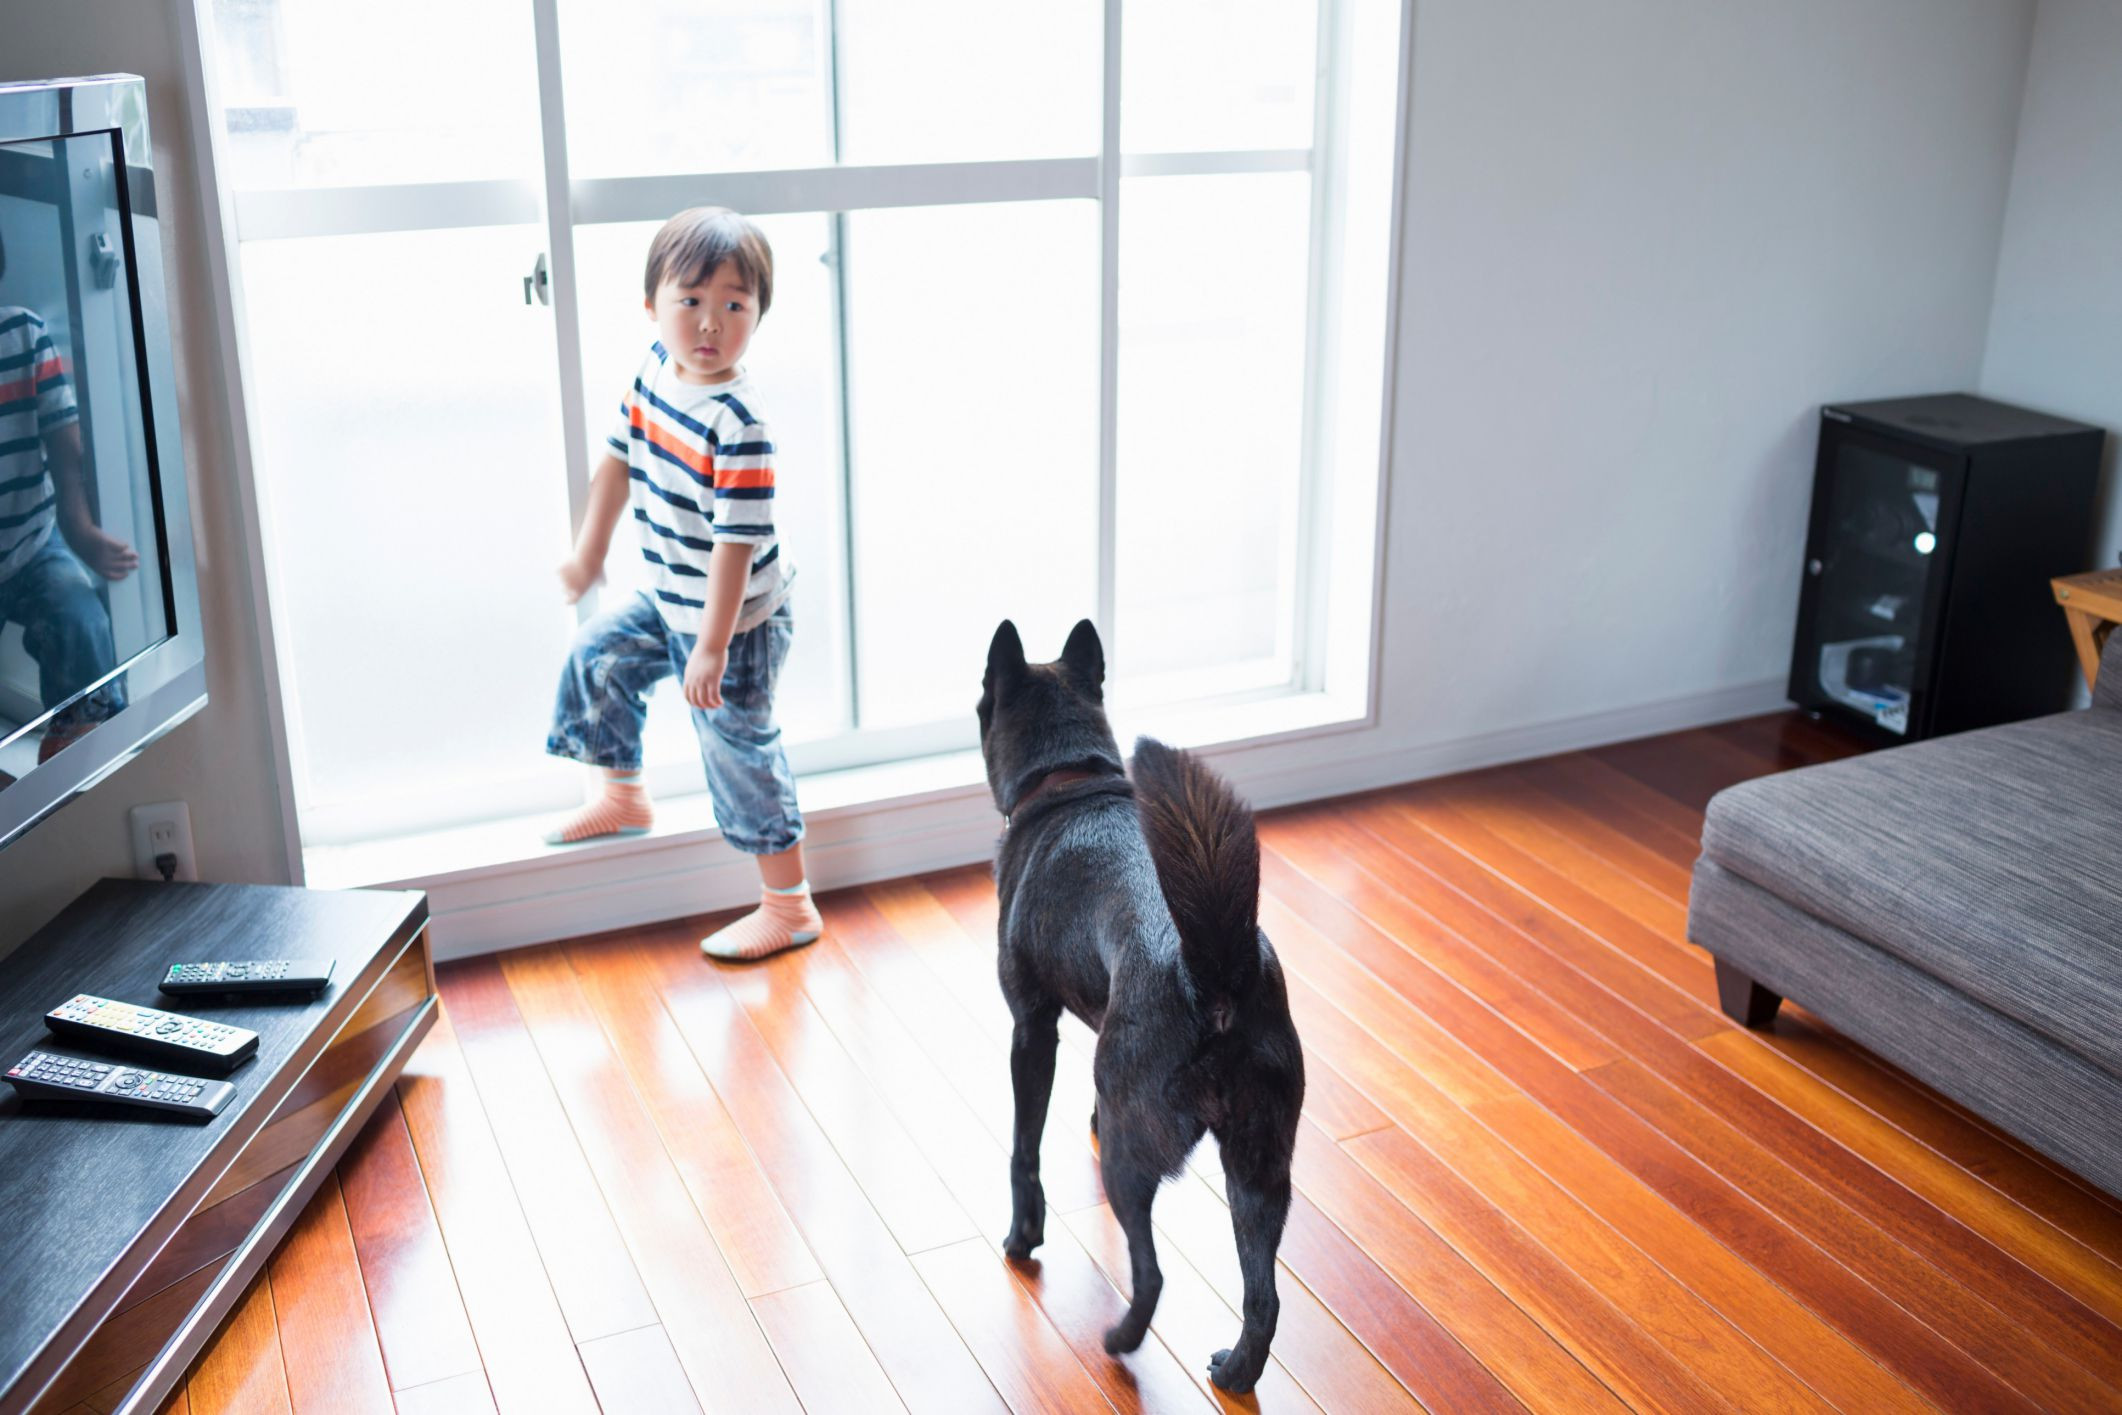 Hardwood Floor Repair Service Of the Most Durable Flooring You Can Install with Dog On Wooden Floor 465892145 56a4a1705f9b58b7d0d7e64e